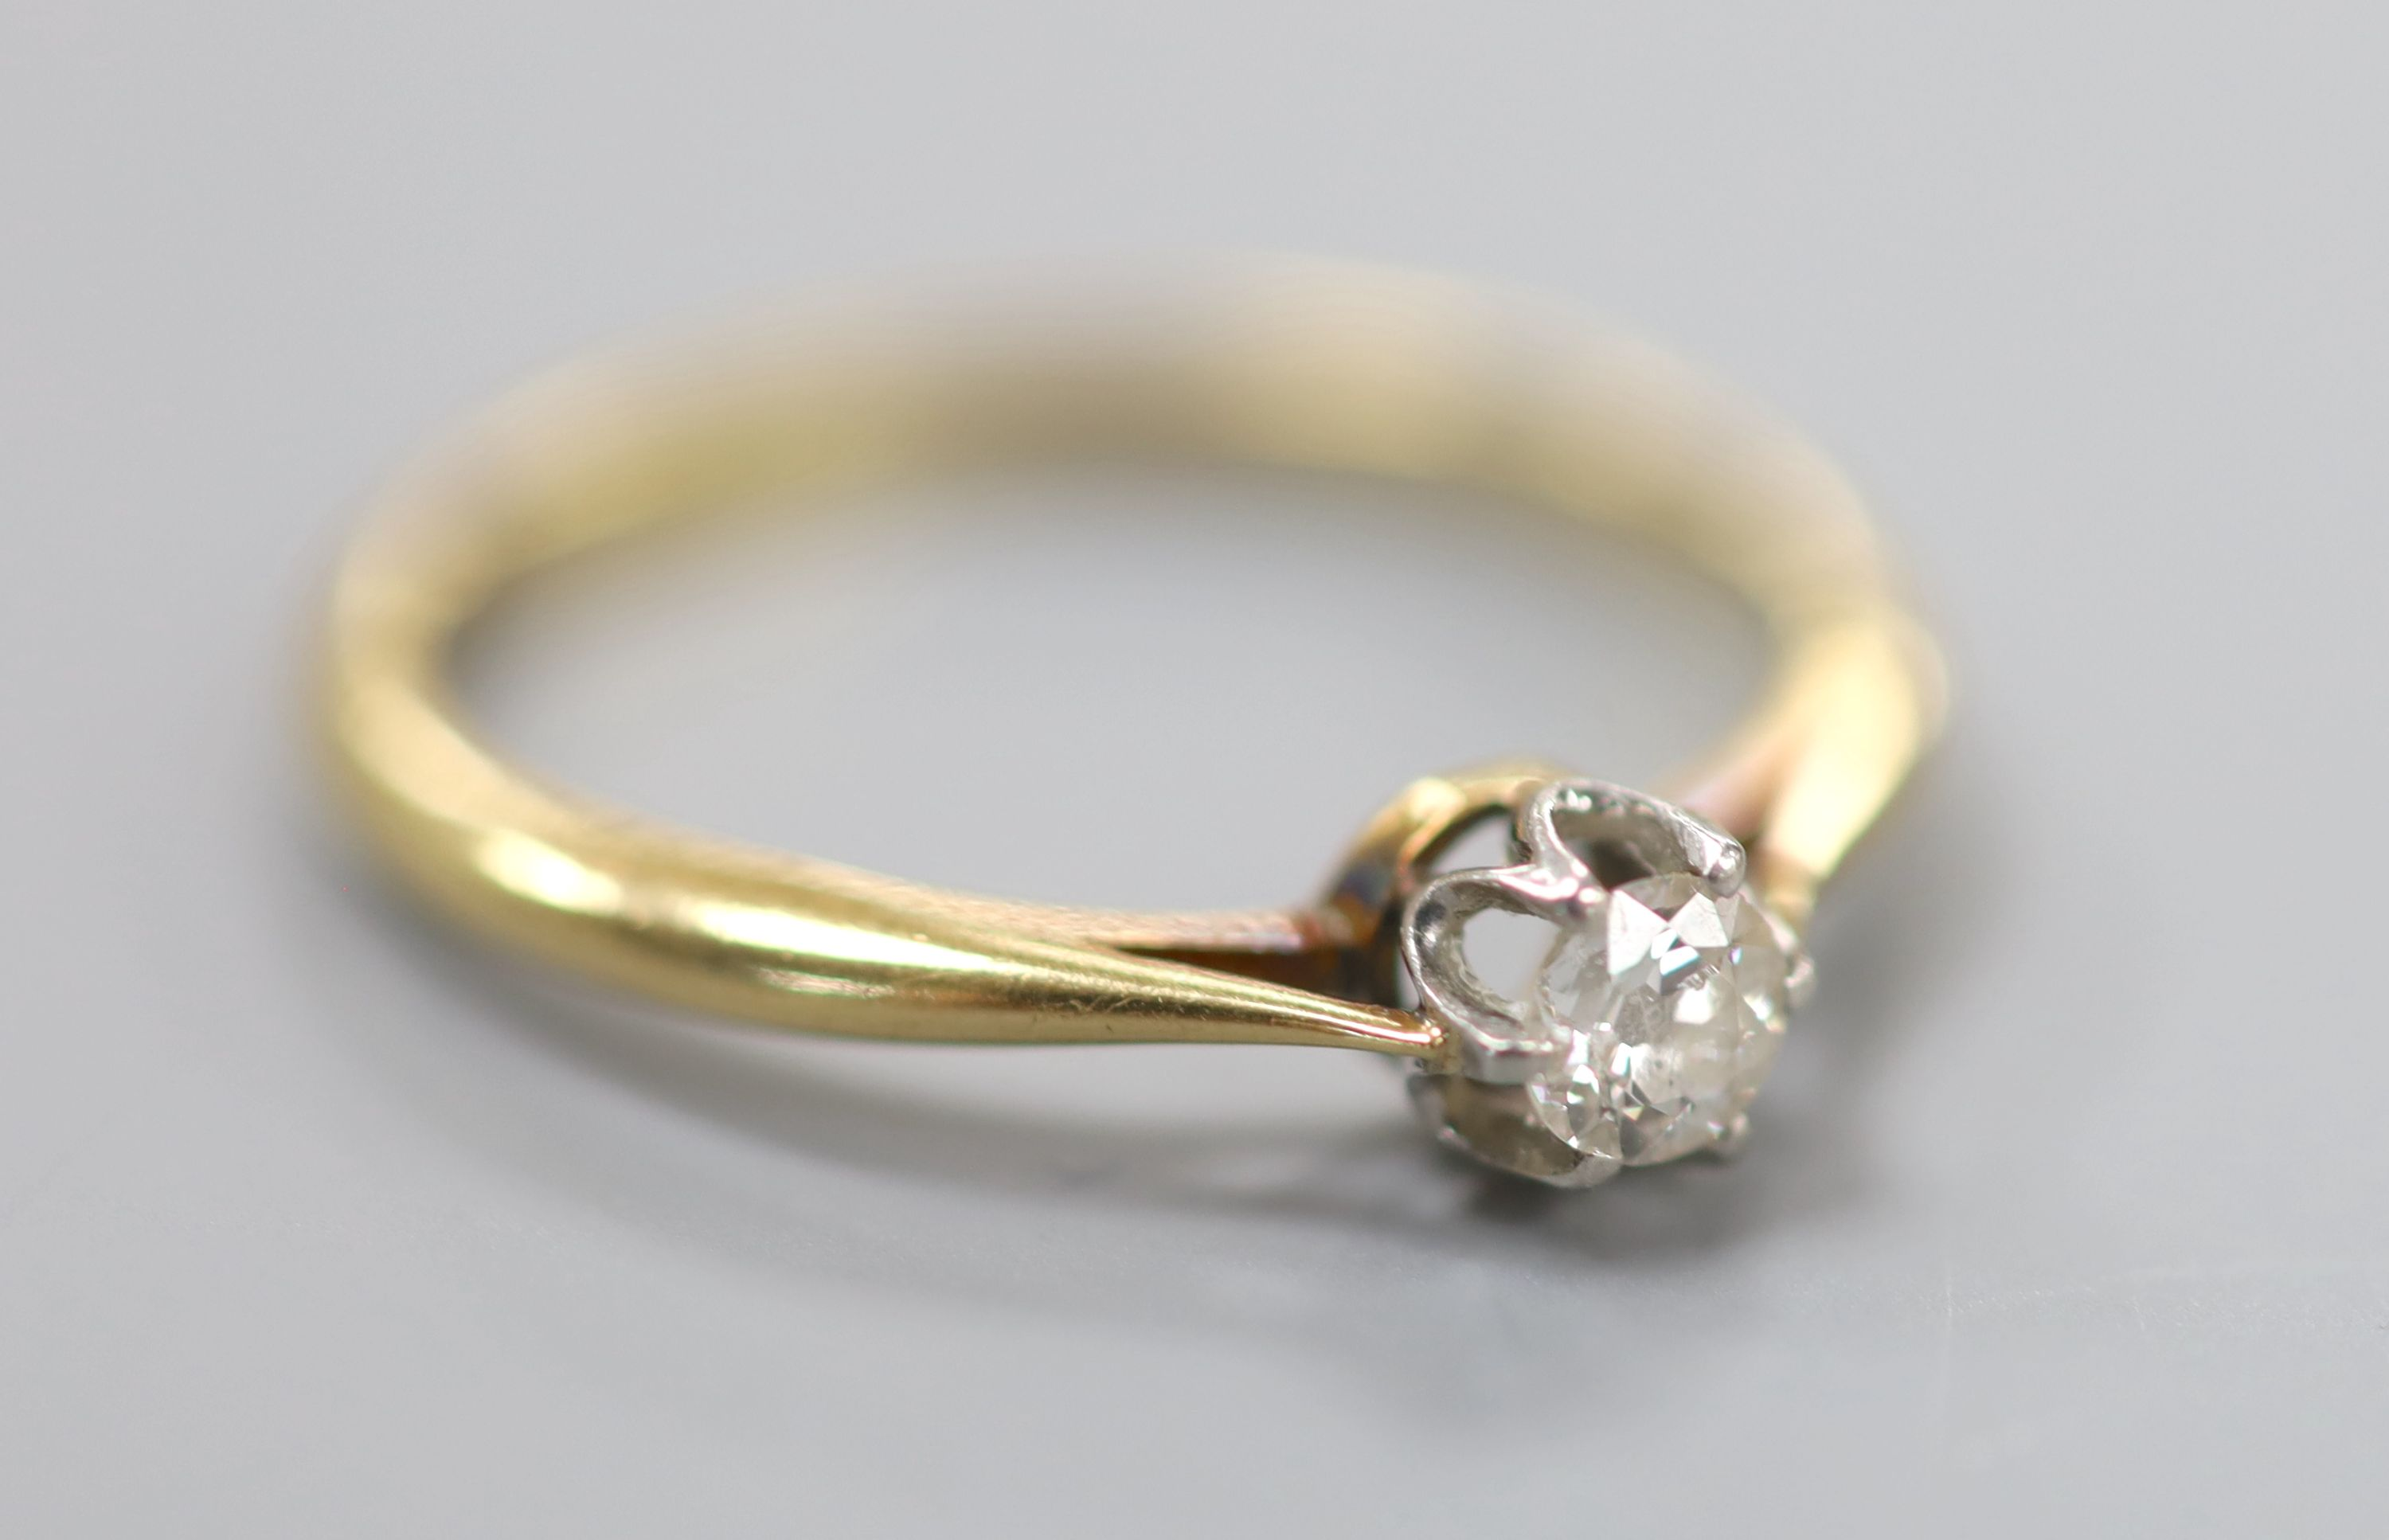 An 18ct and solitaire diamond ring, size Q, gross 2.5 grams, the stone weighing approximately 0.